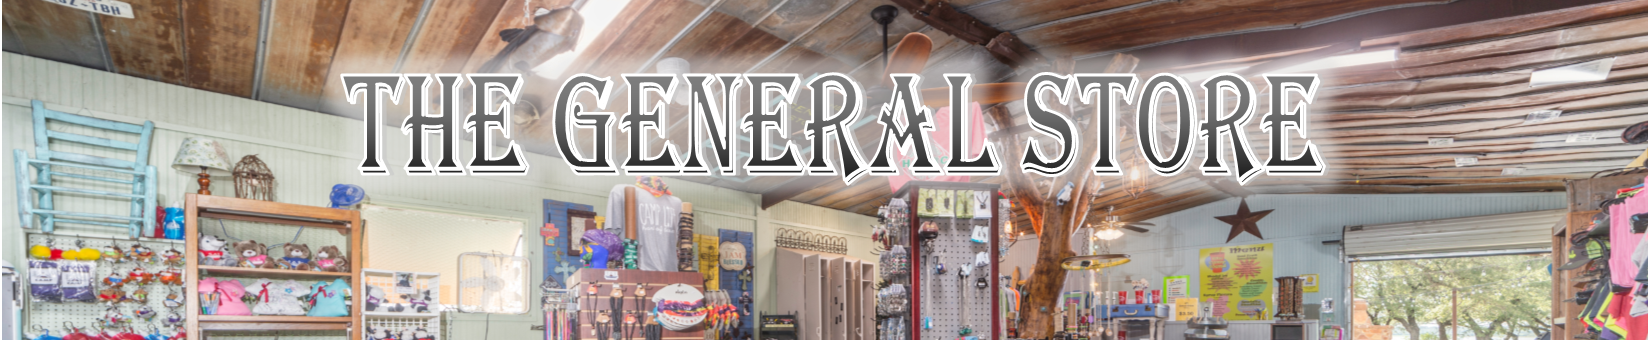 The General Store (3).png